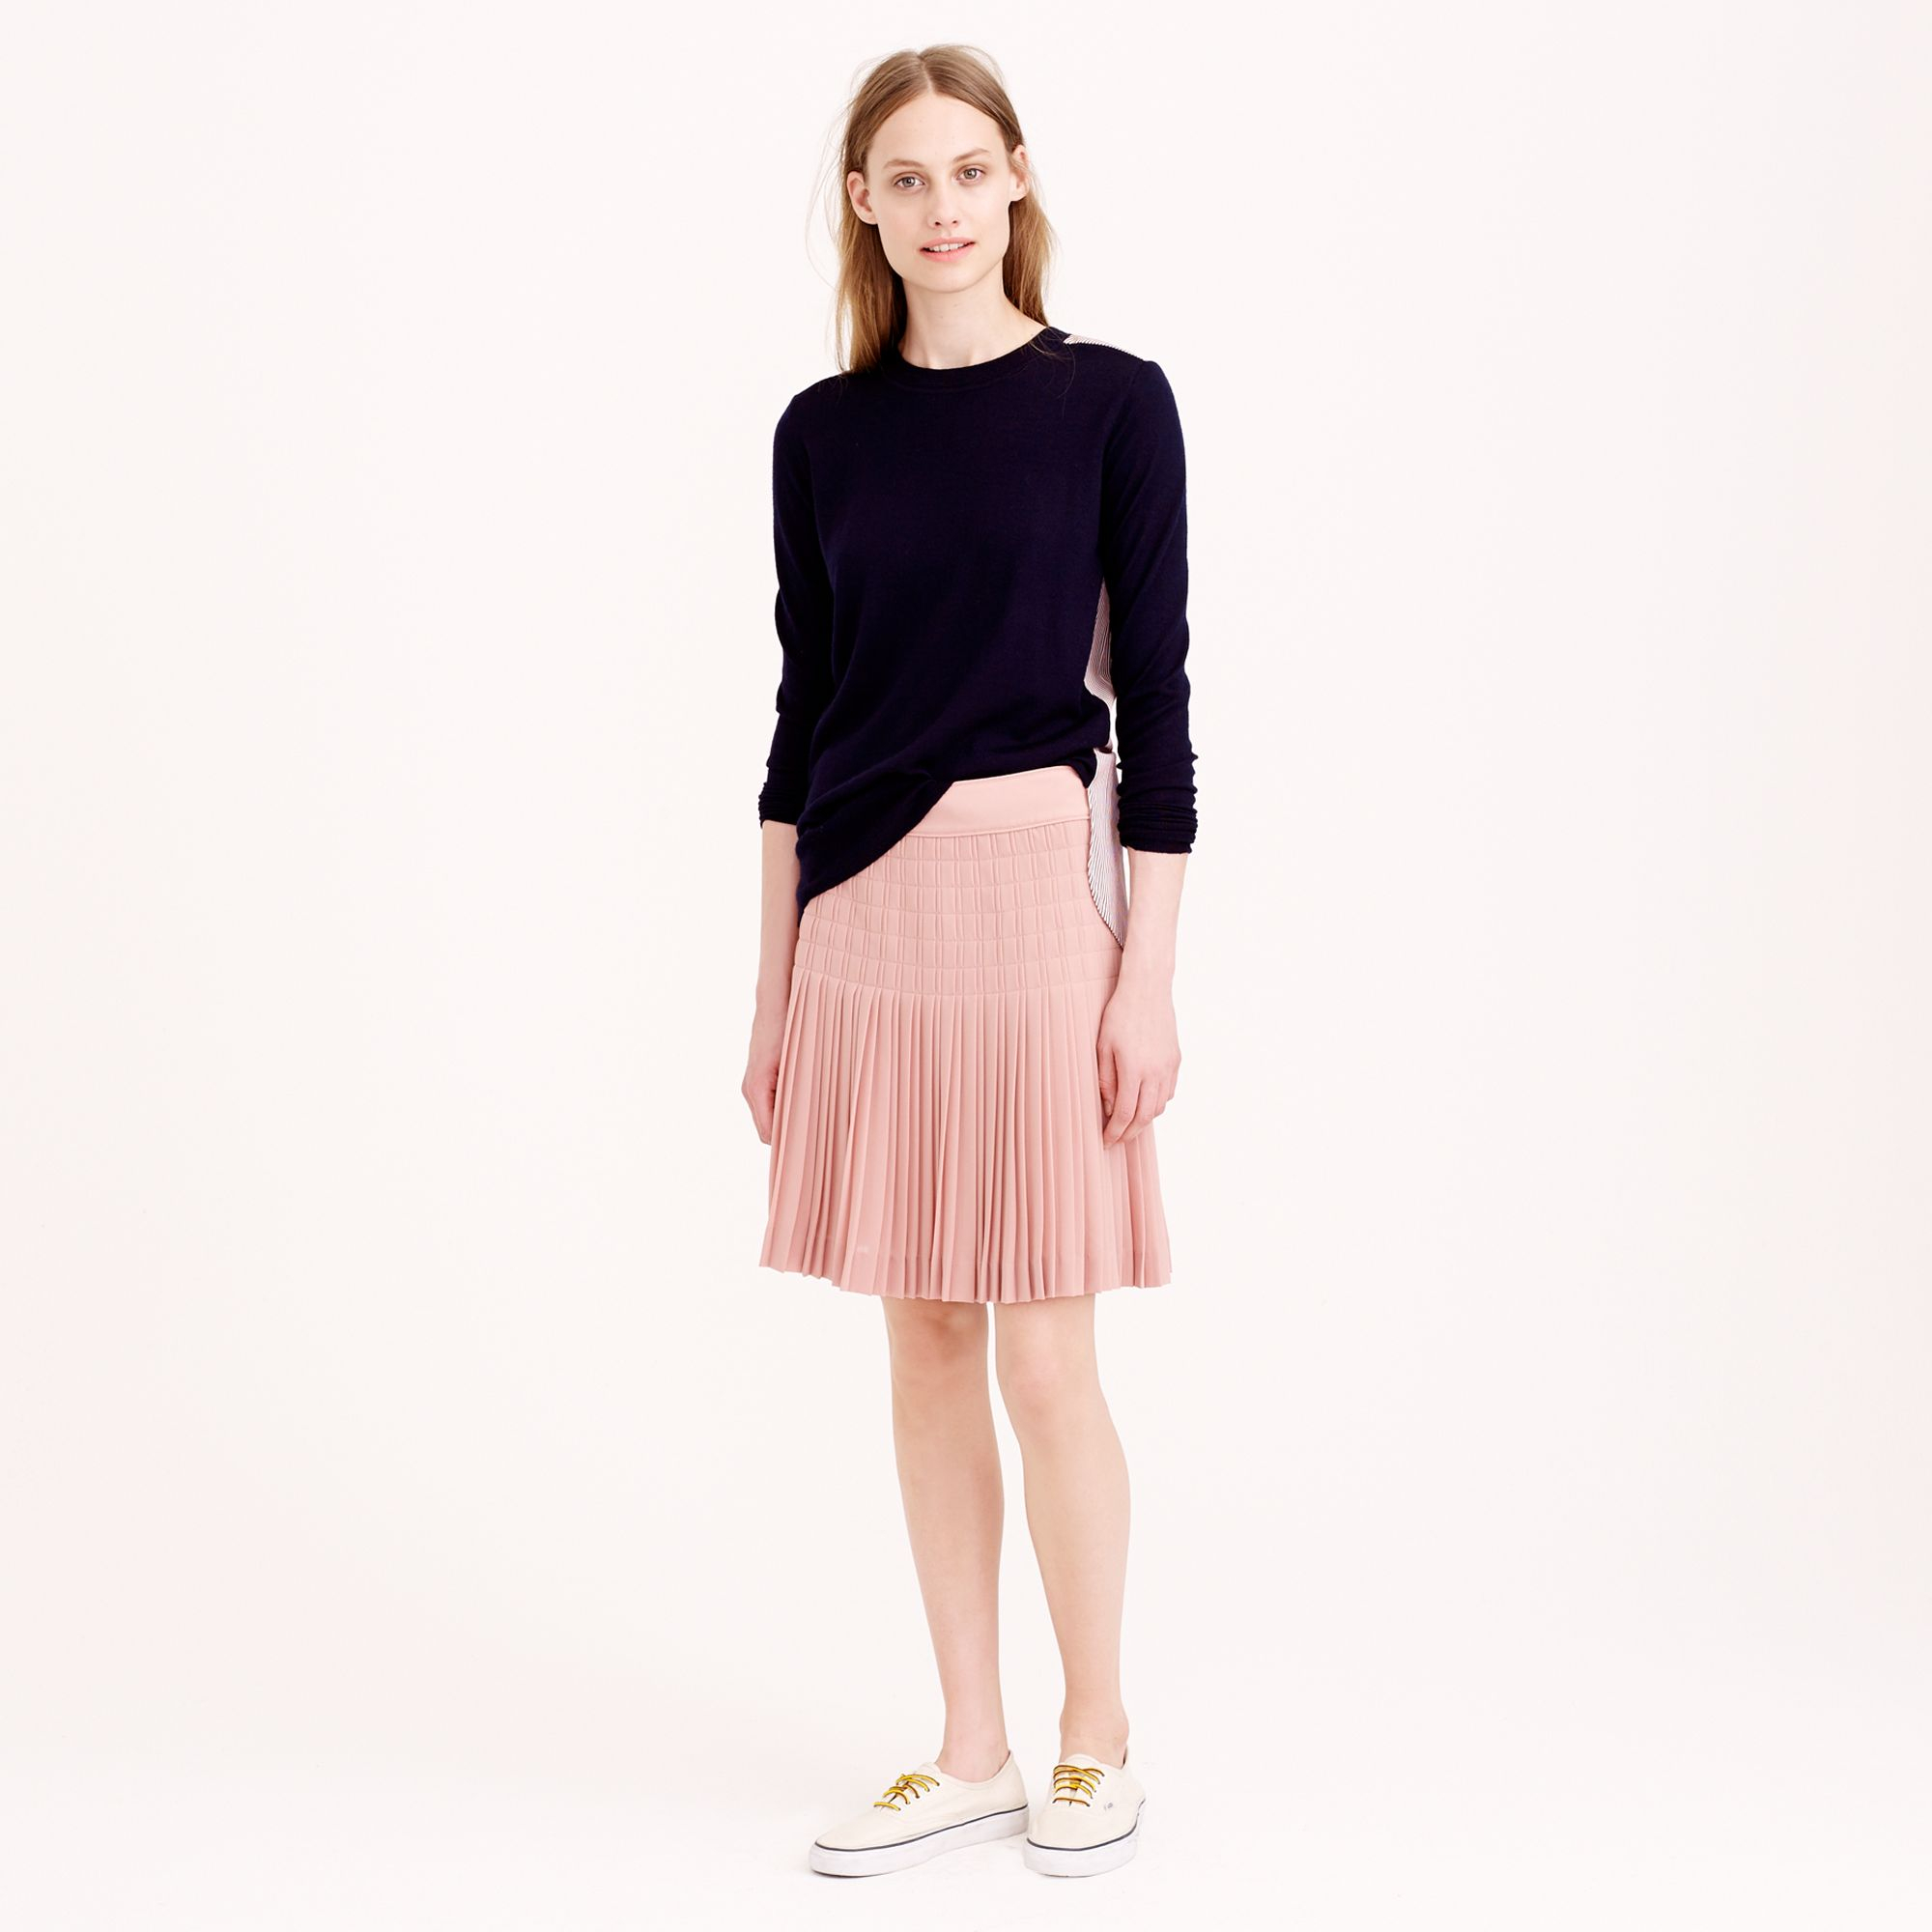 bbd45547a8 J.Crew Pleated Lattice Skirt in Pink - Lyst